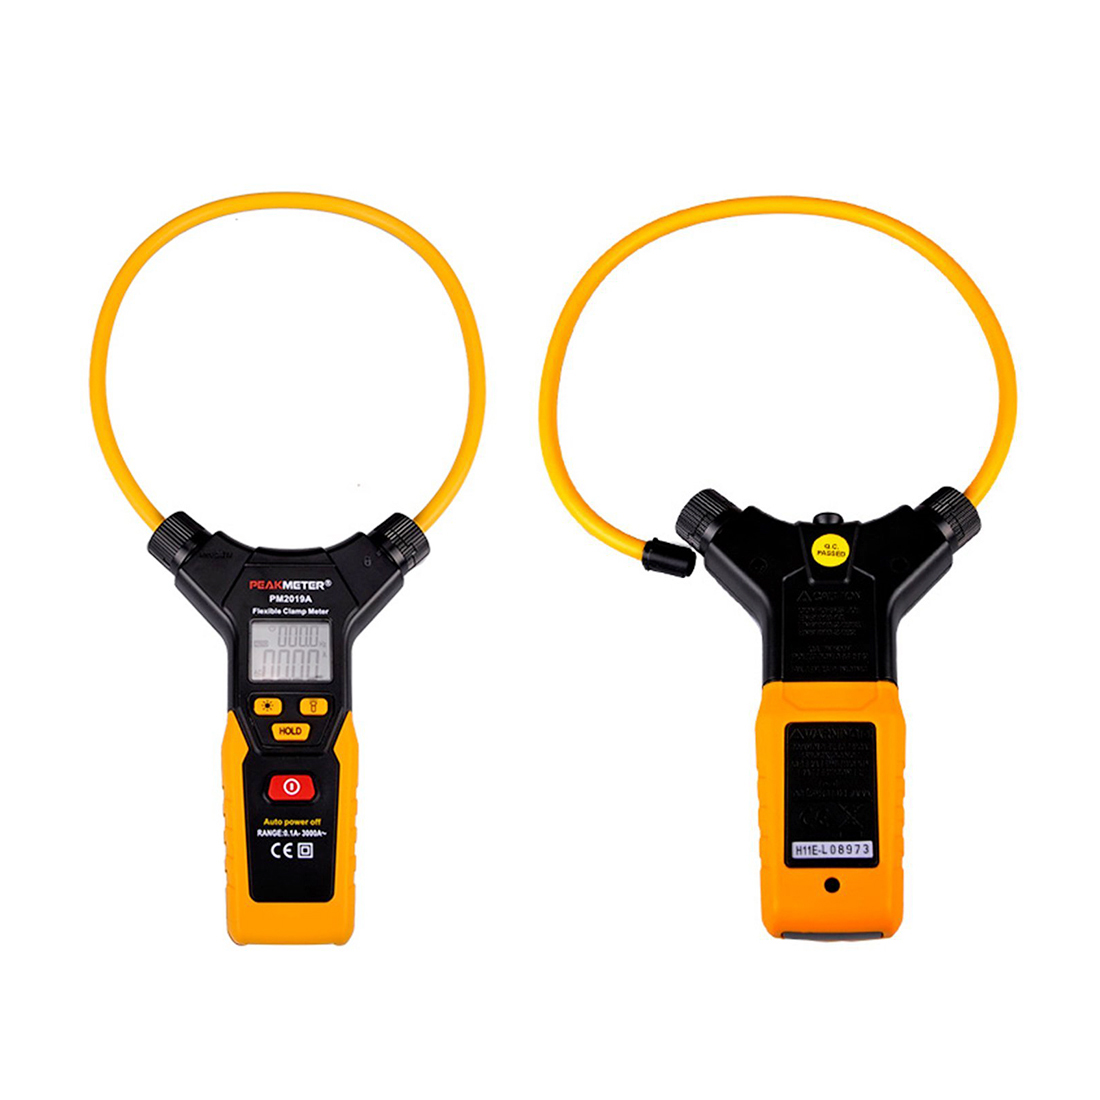 New Style PEAKMETER PM2019A AC Digital Flexible Clamp Meter Orange with Large Size